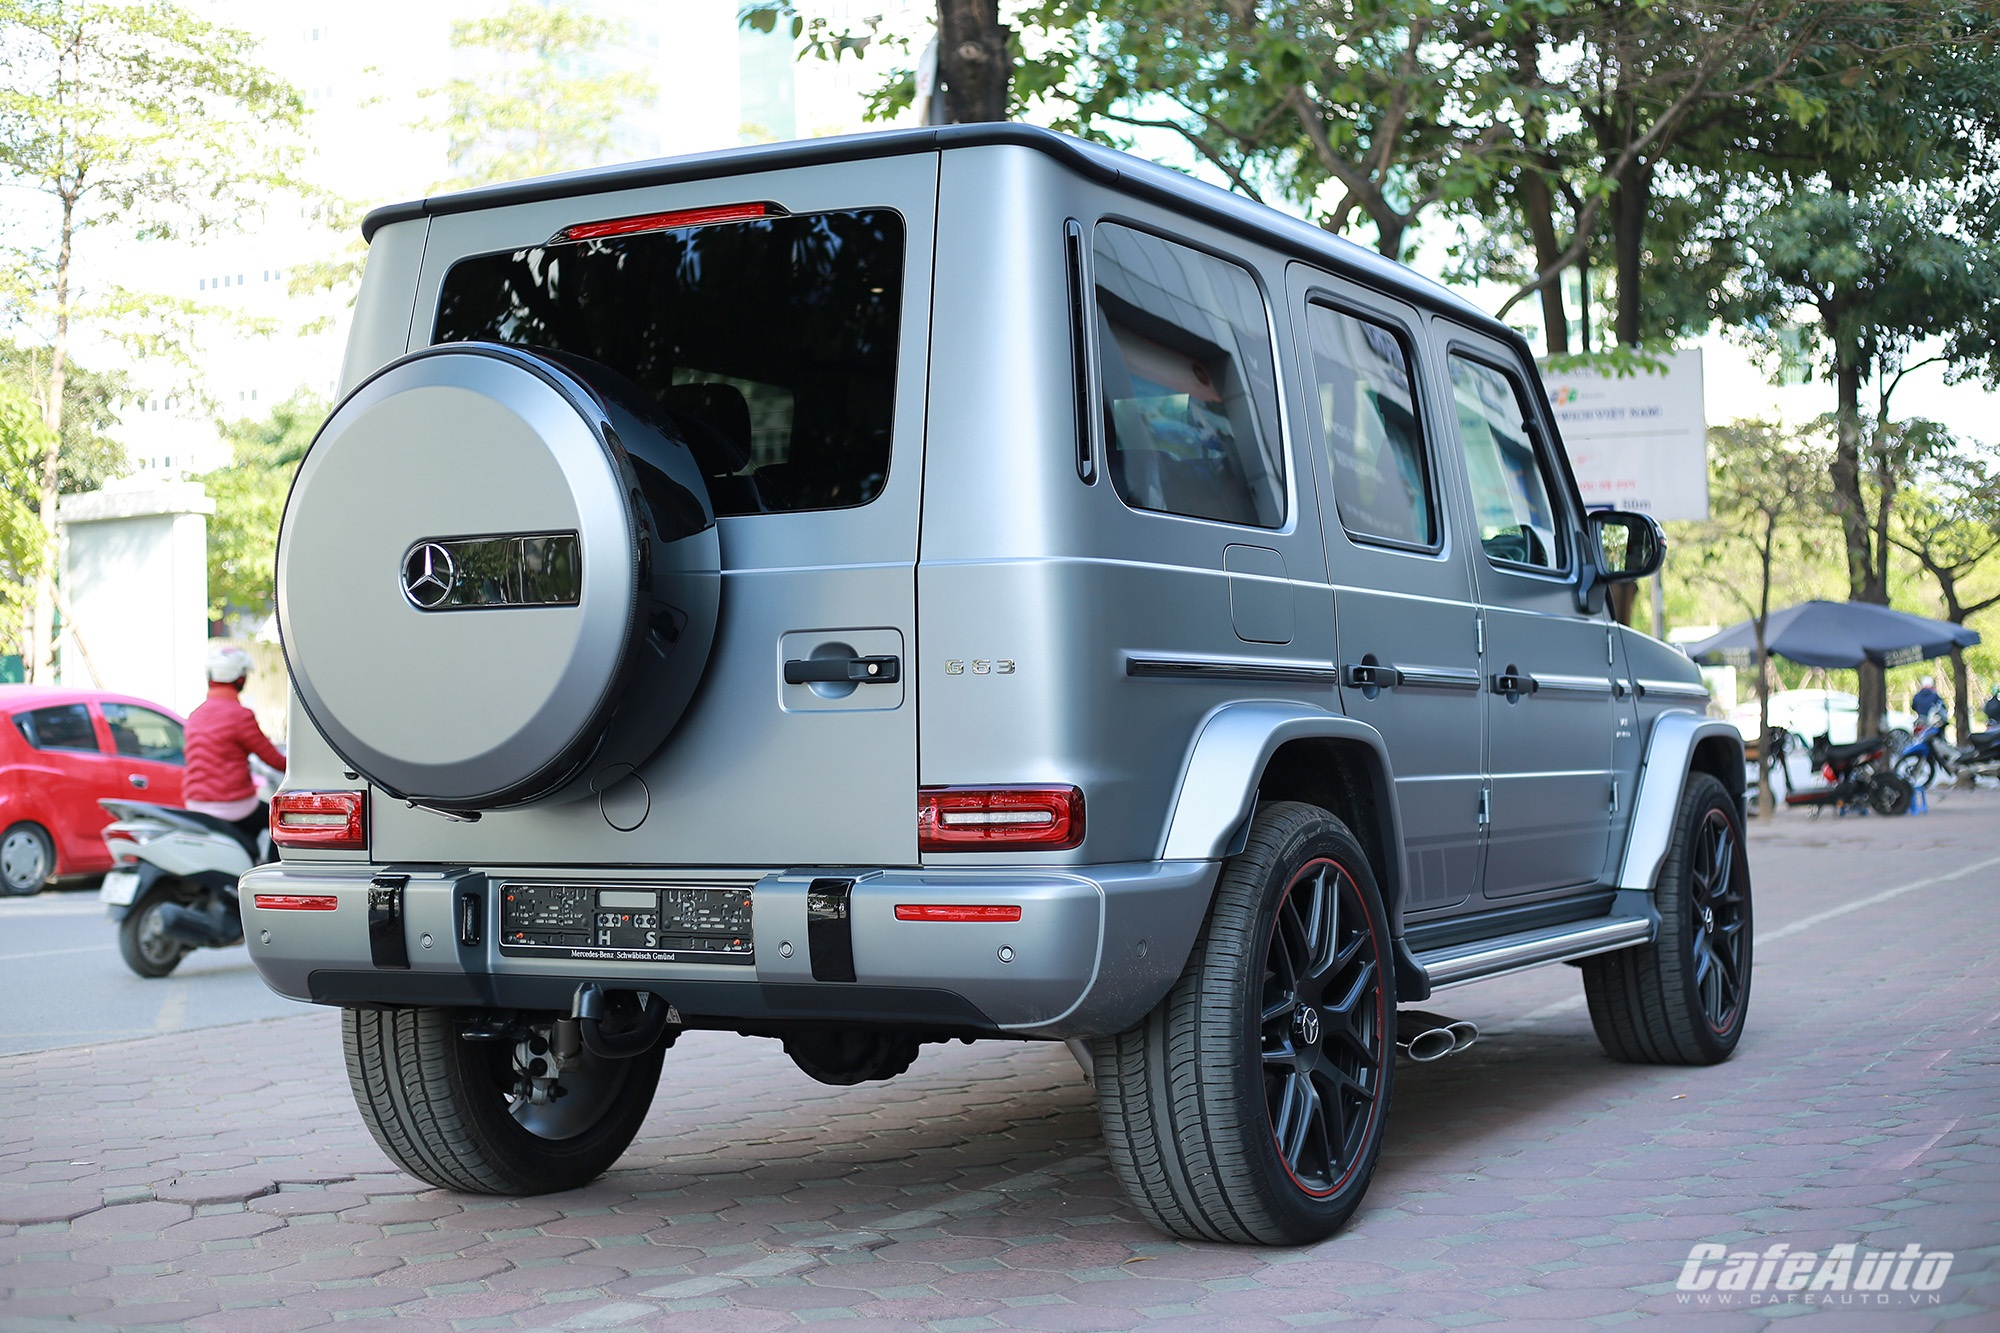 G63edition1-cafeautovn-19